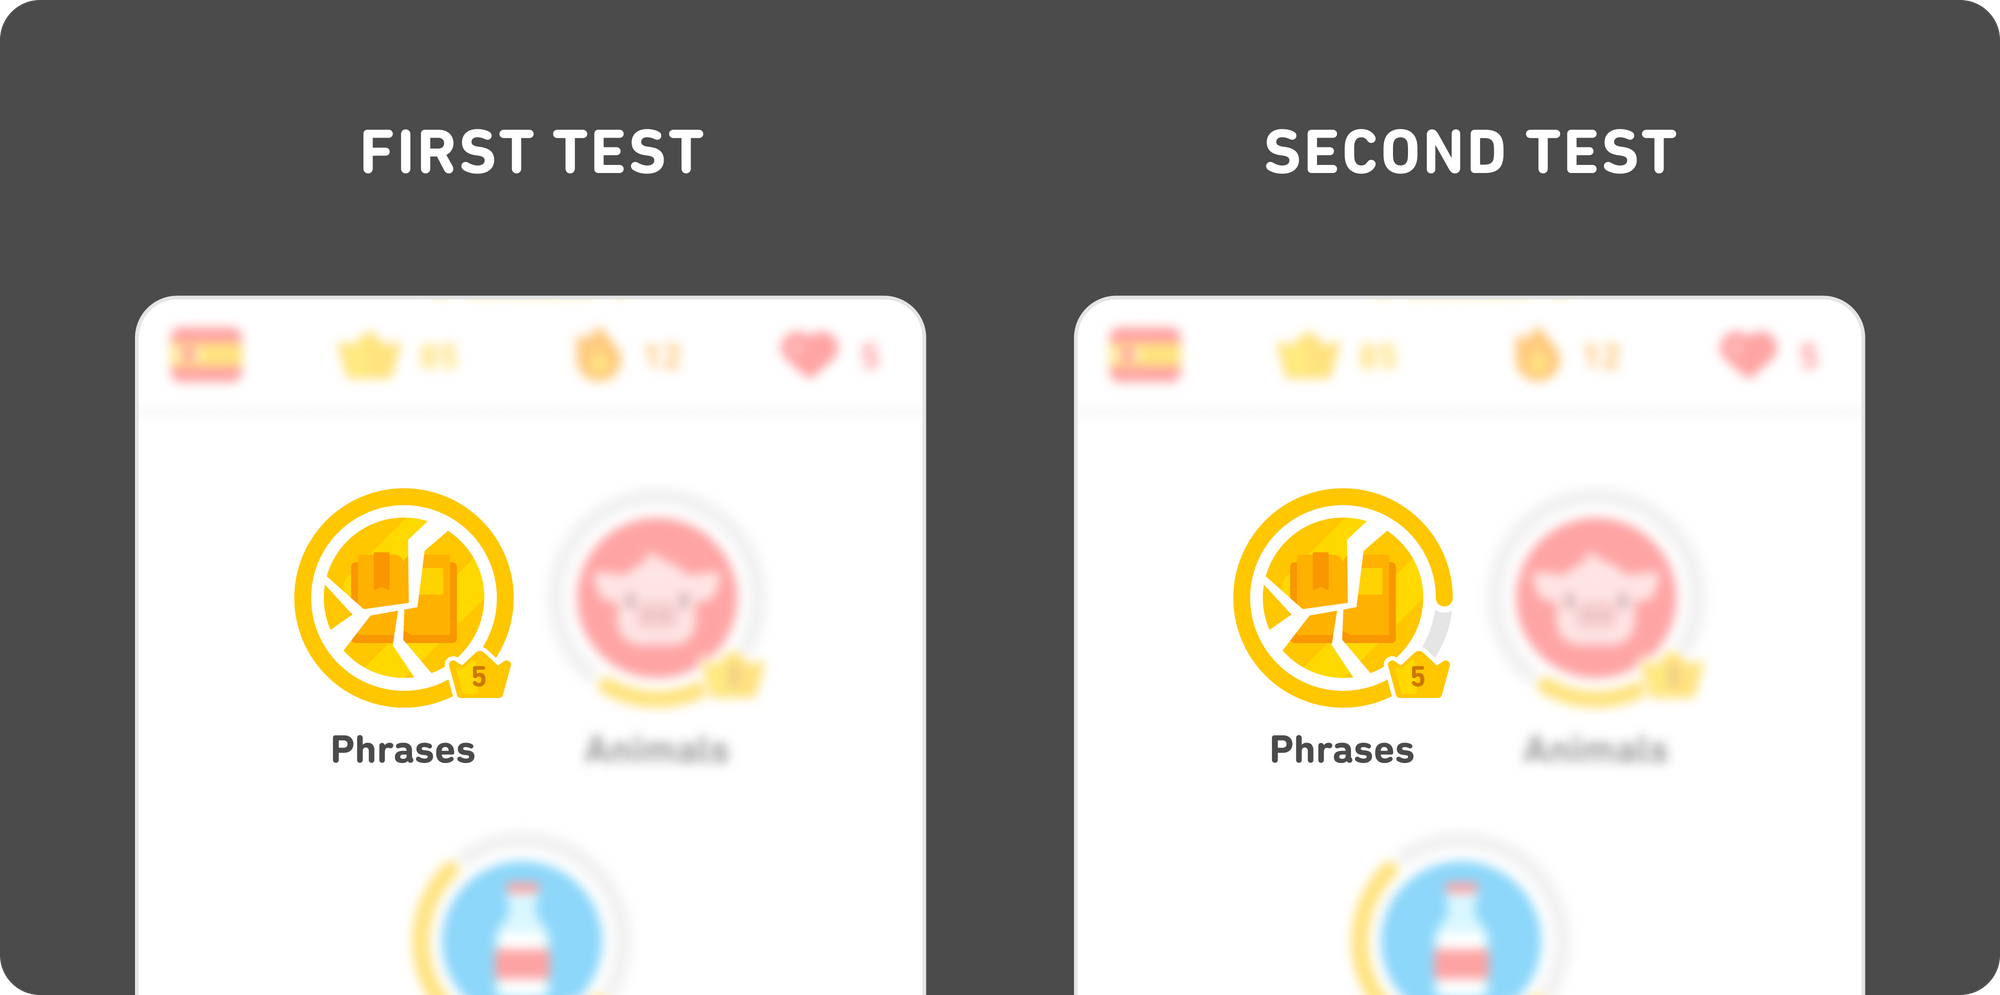 """Illustration of two partial screenshots, side-by-side. On the left is the """"first test"""": the gilded skill circle is gold and cracked, and the progress bar remains fully around the circle. On the right is the """"second test"""": the gilded skill circle is still gold and cracked, but the progress bar has been reduced and it doesn't reach all the way around the skill circle."""